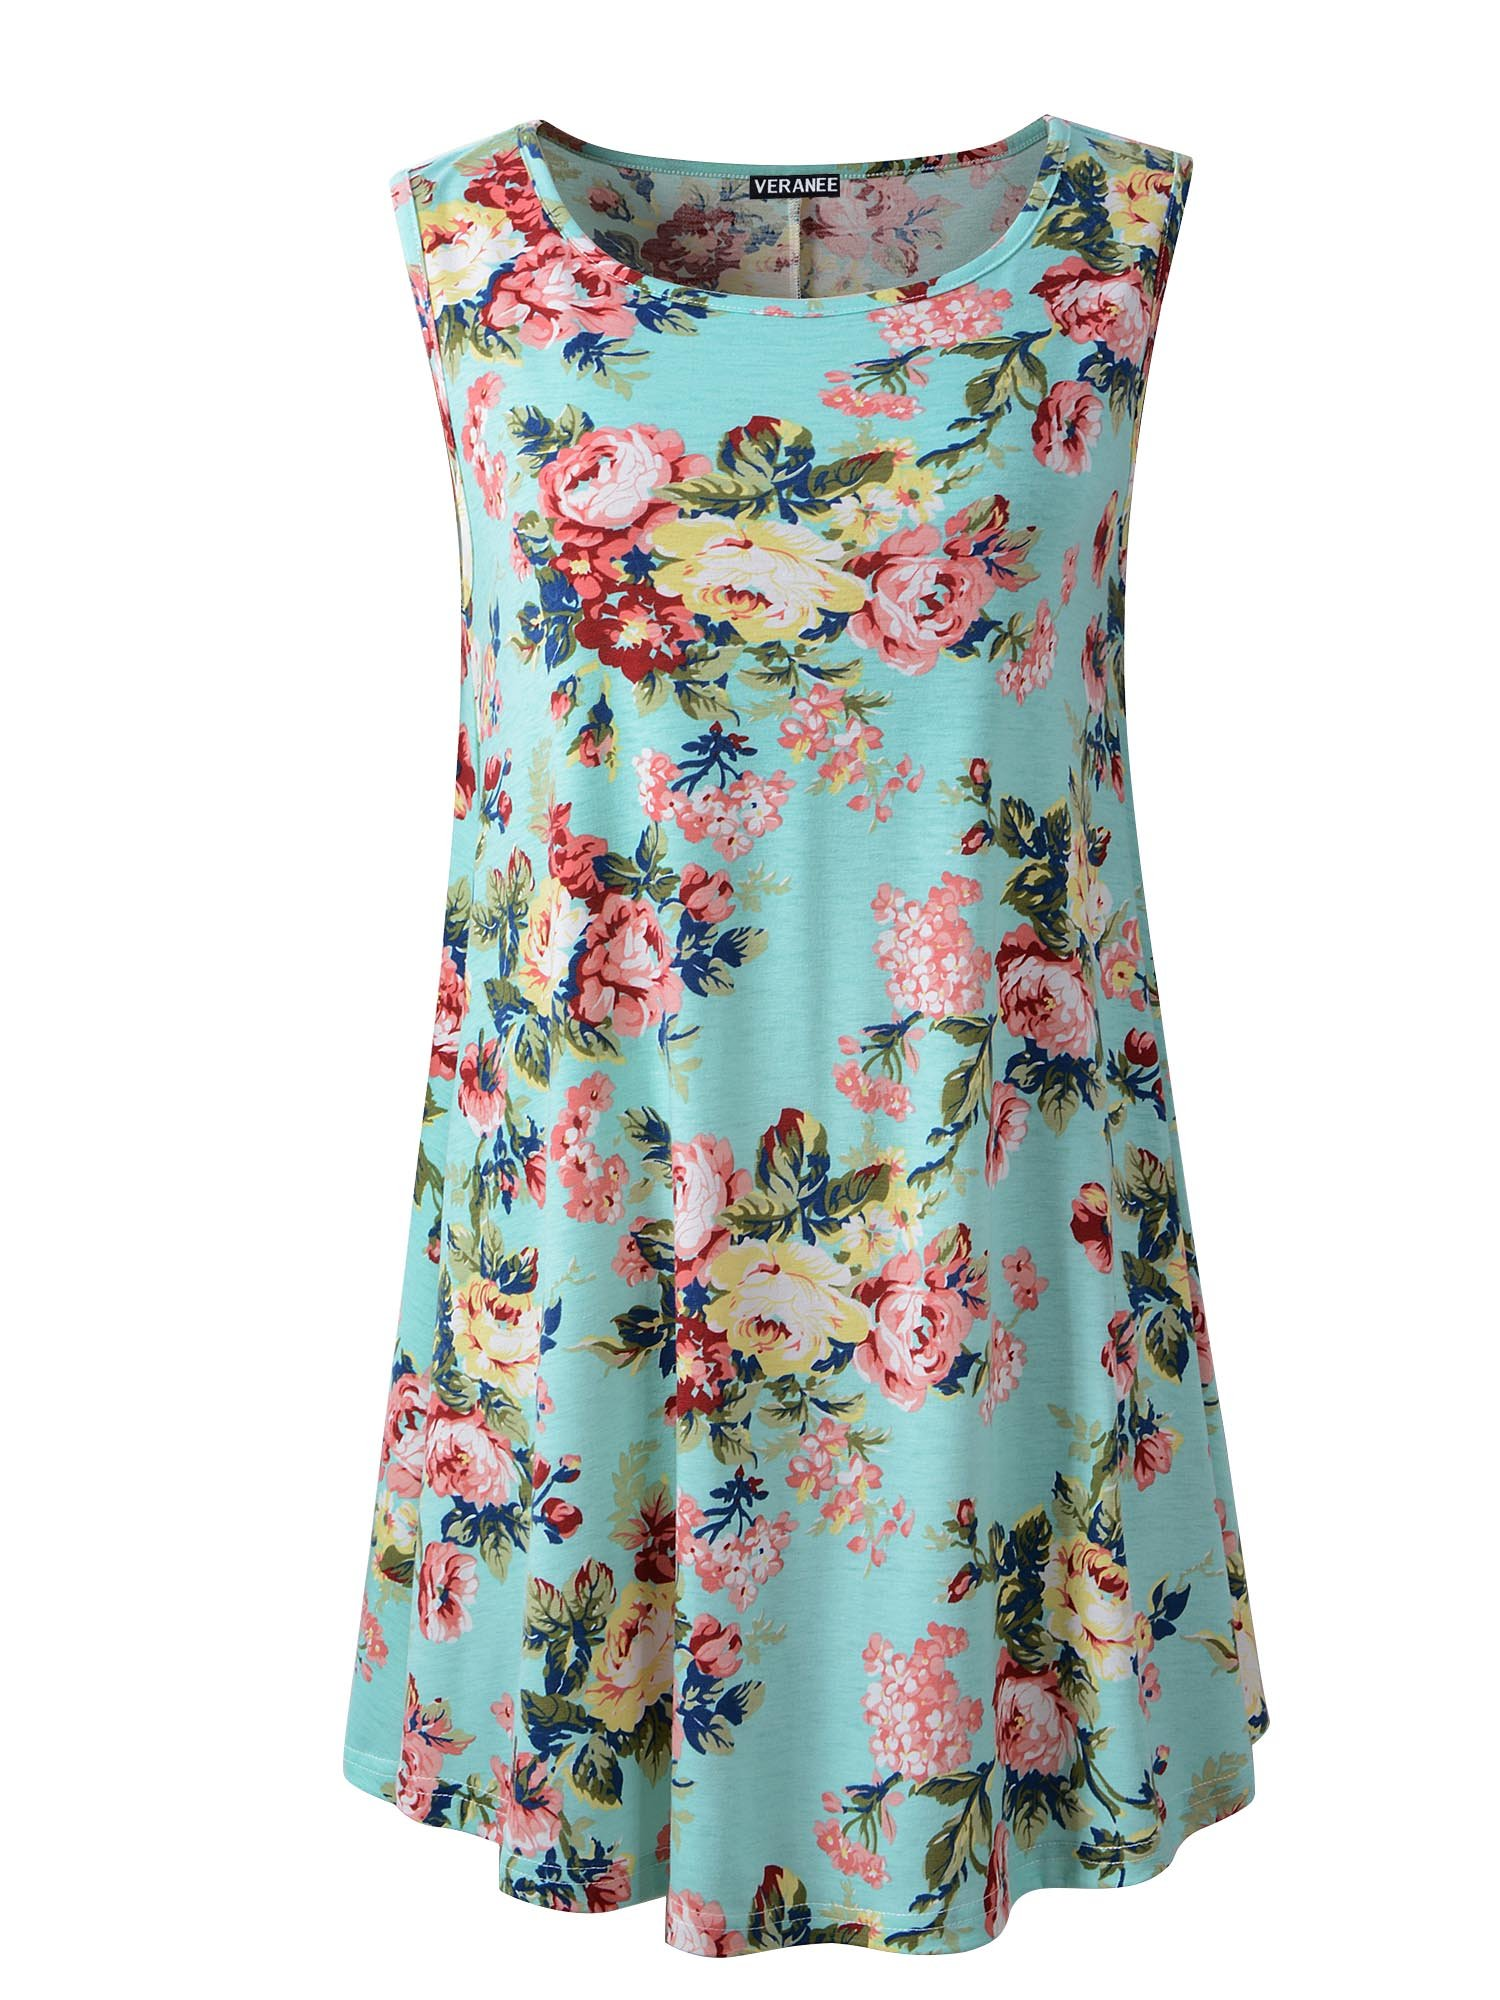 Veranee Women's Sleeveless Swing Tunic Summer Floral Flare Tank Top Large 6-2